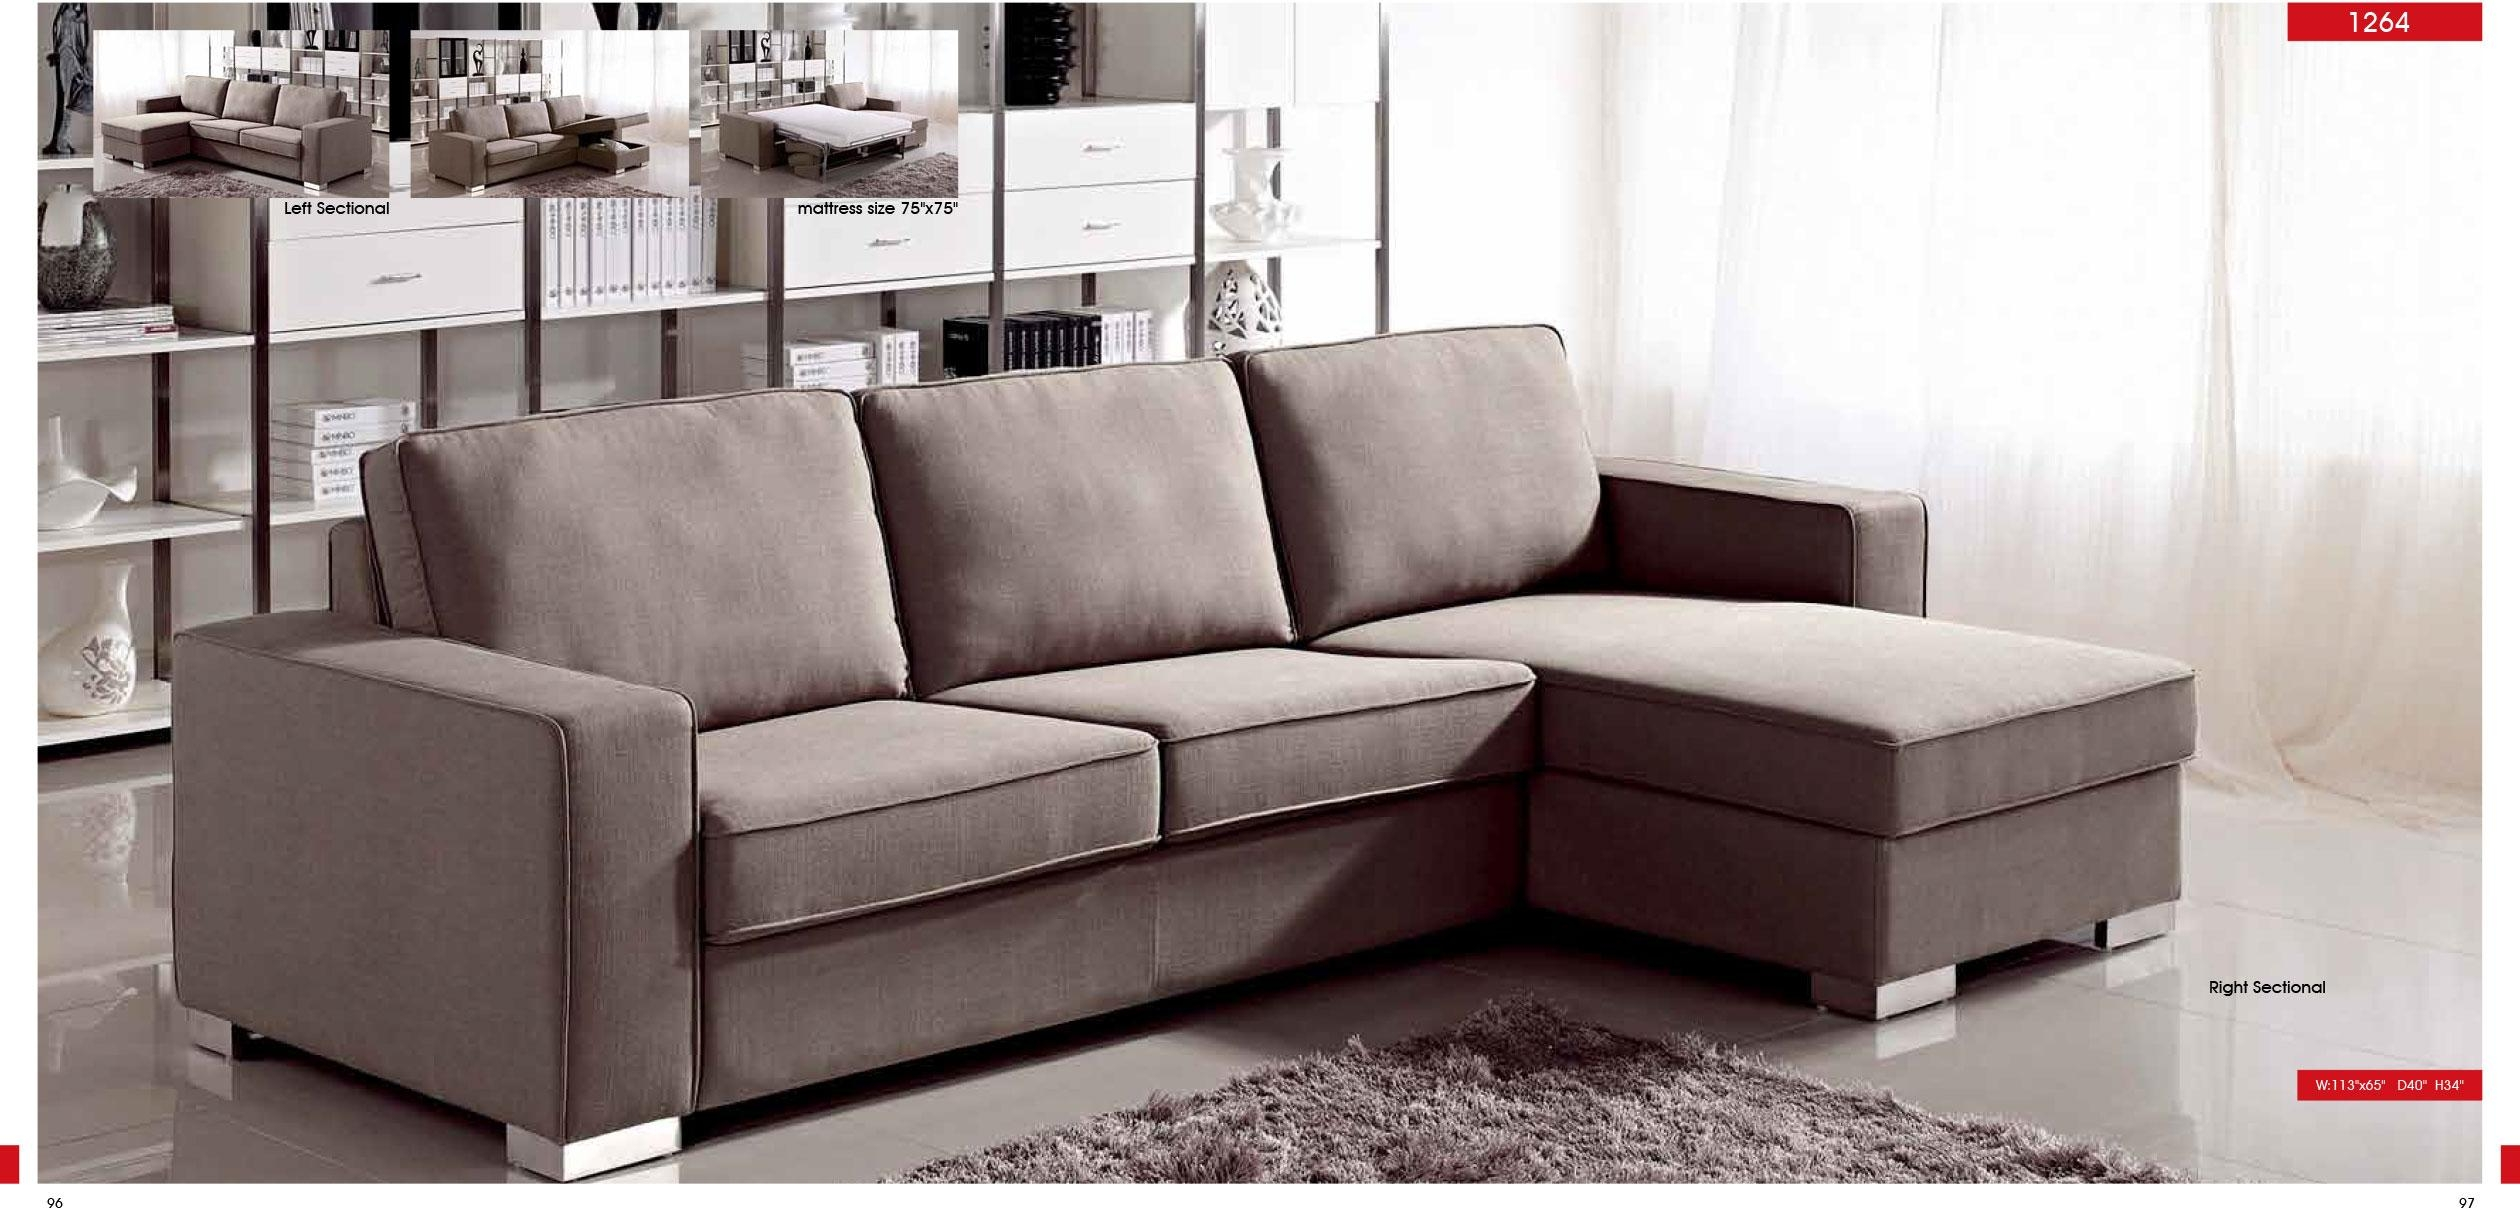 Media Room Sectional Sofas | Bjyoho Pertaining To Media Sofa Sectionals (Image 10 of 20)